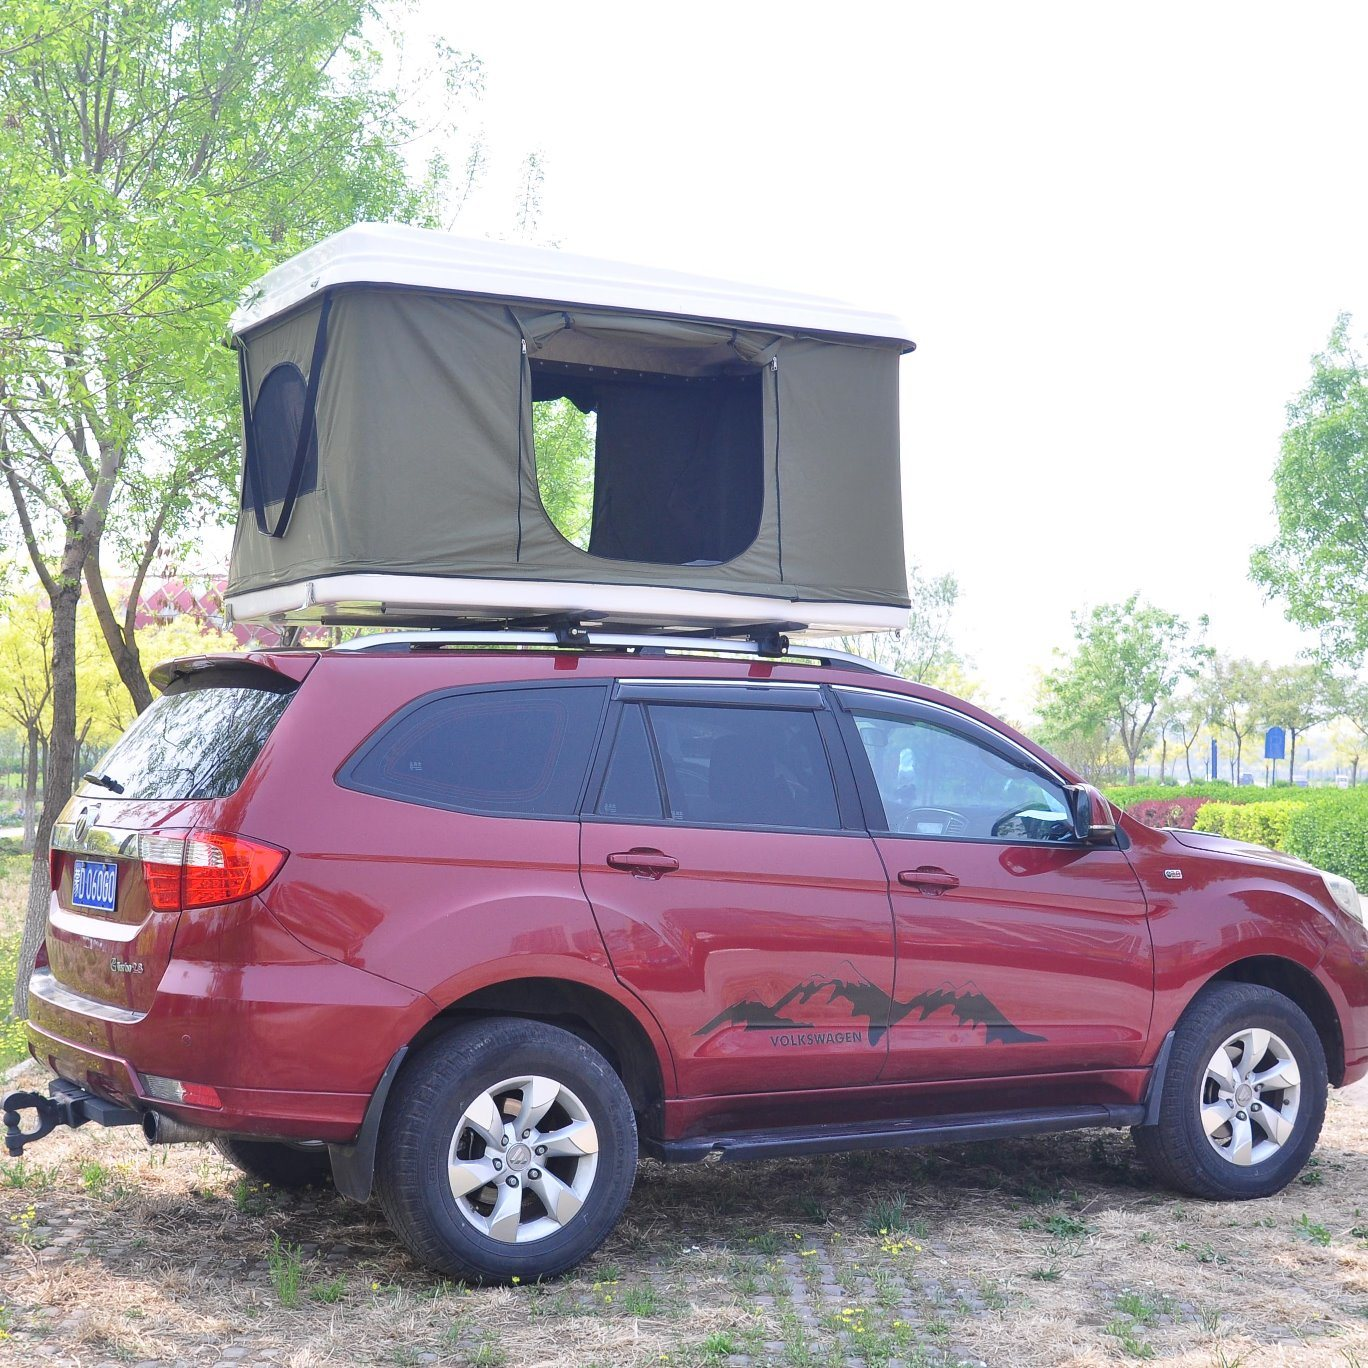 China Outdoor Overland 4x4 Accessories Car Camping Roof Top Tent China Fiberglass Car Roof Top Tent And Hard Shell Roof Top Tent Price